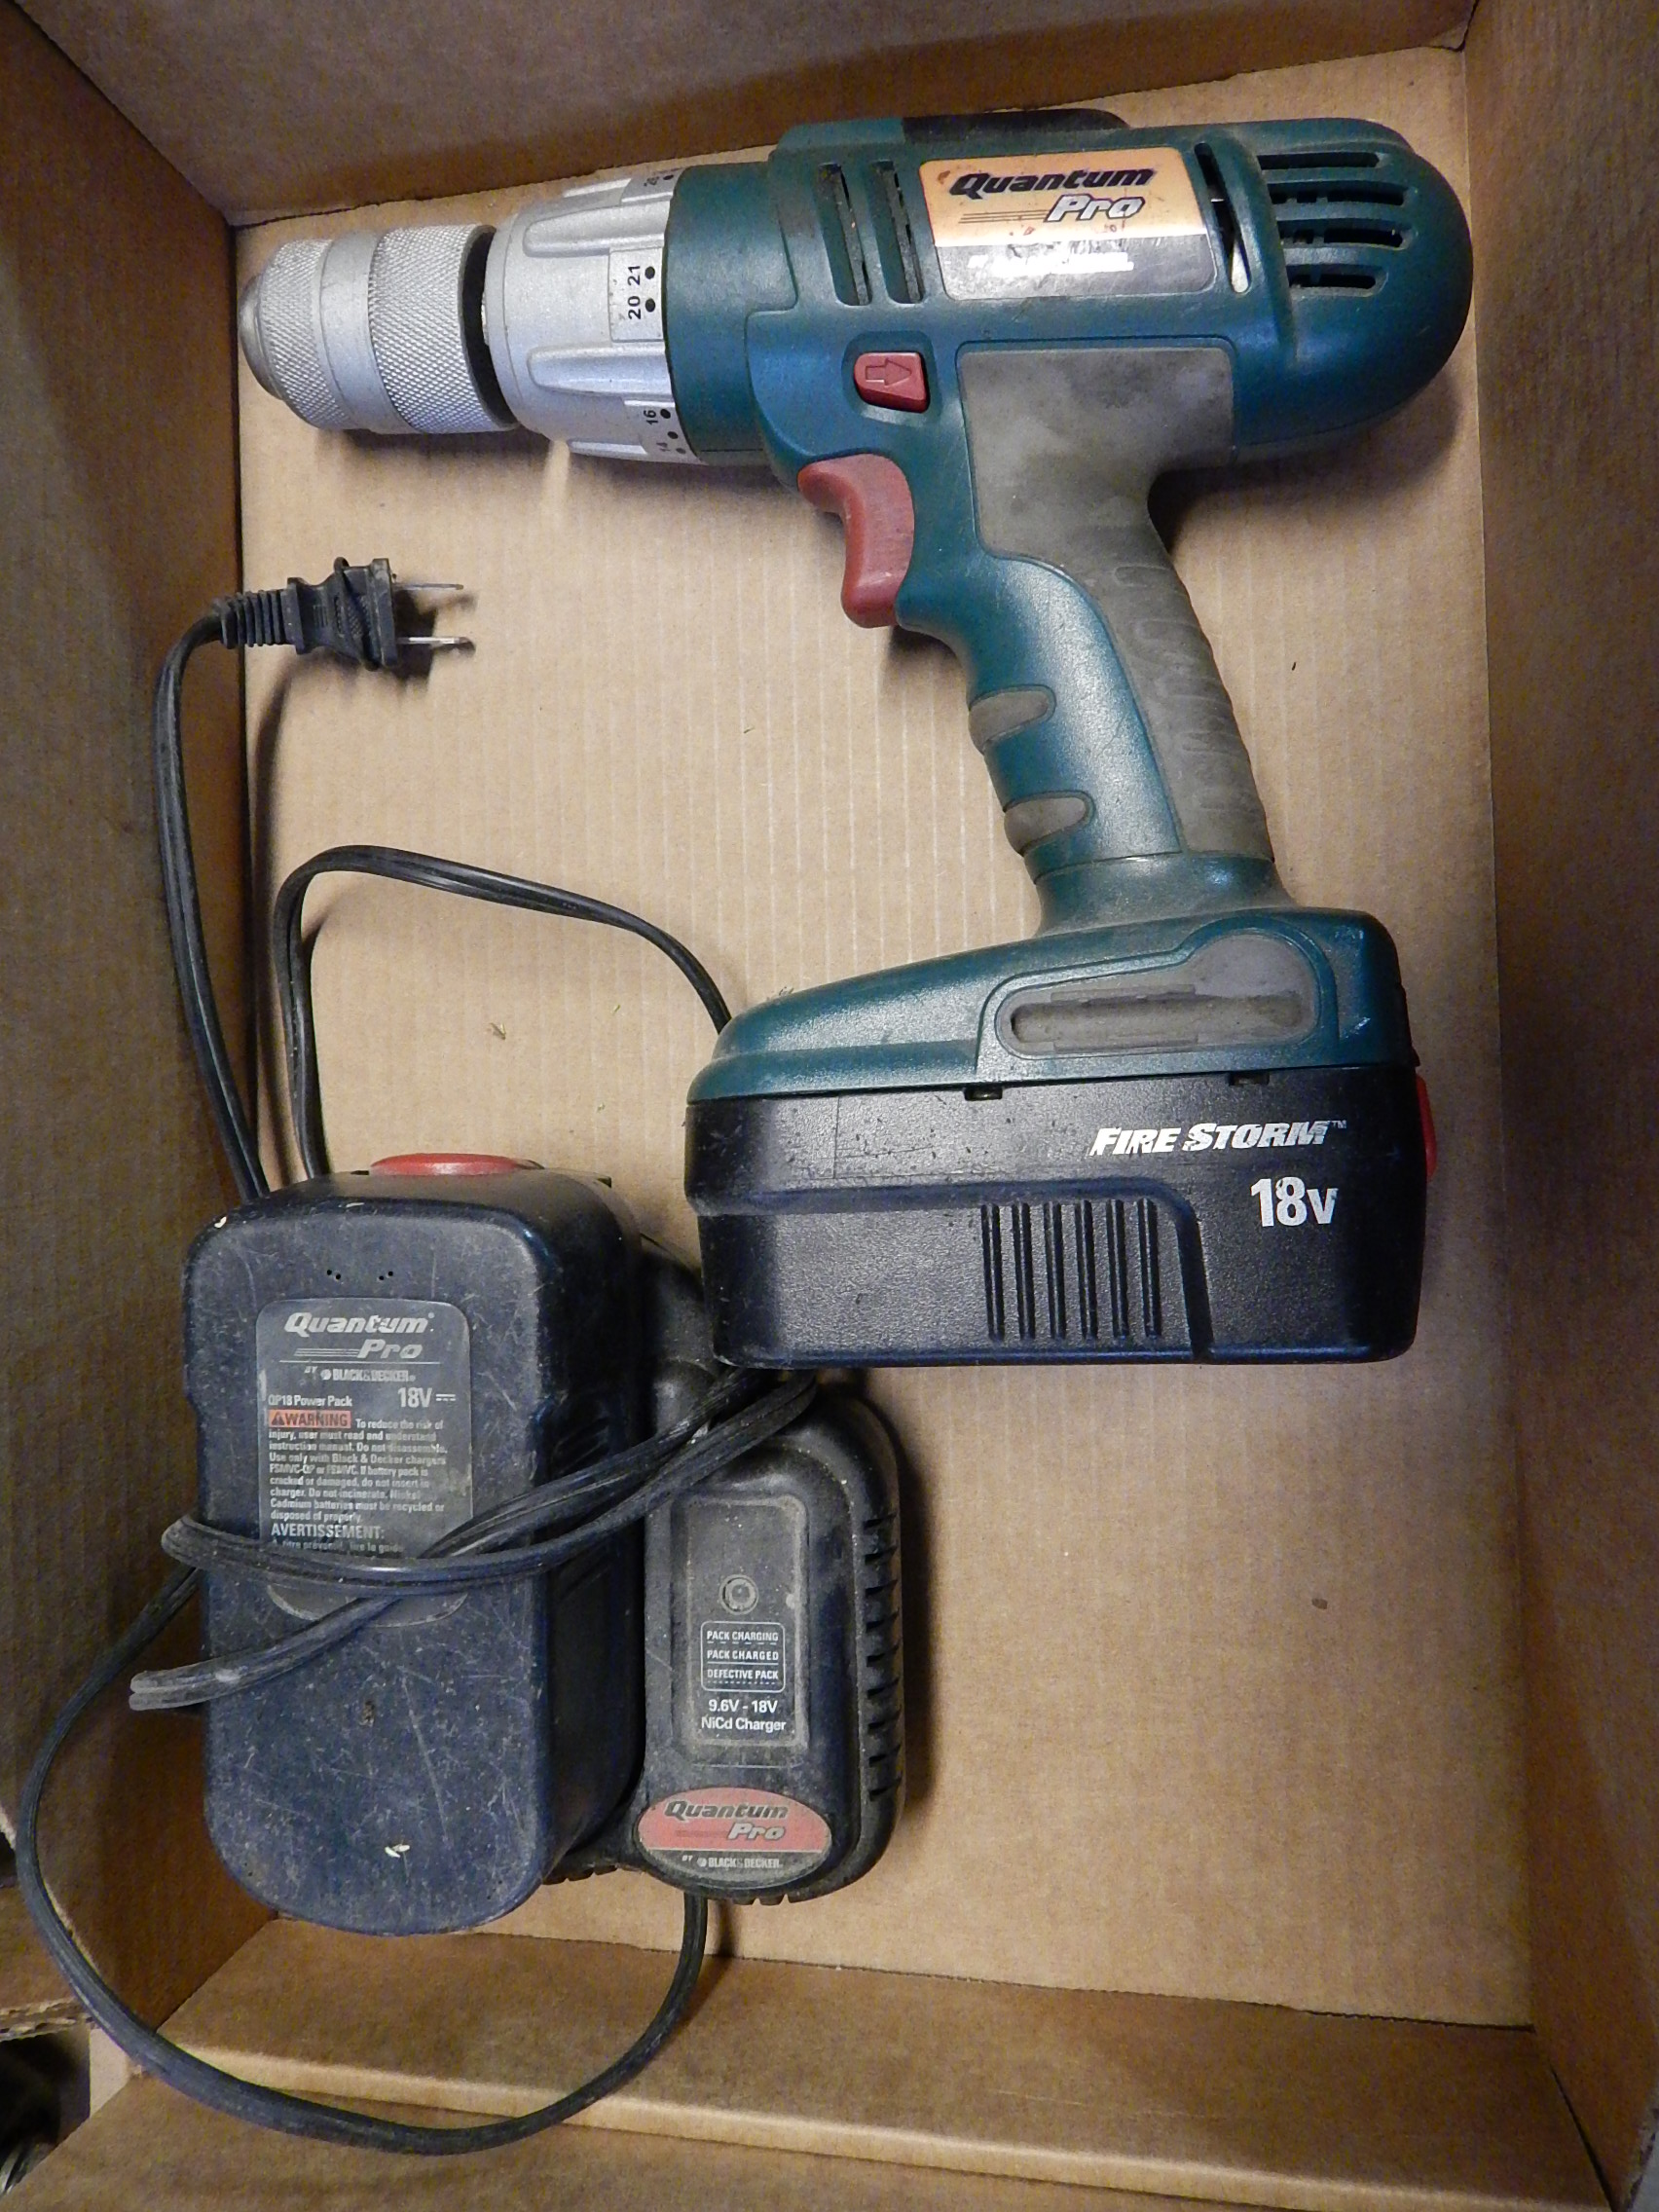 Lot 42 - Black and Decker Quantum Pro 18V Cordless Drill w/ (2) Batteries and Charger